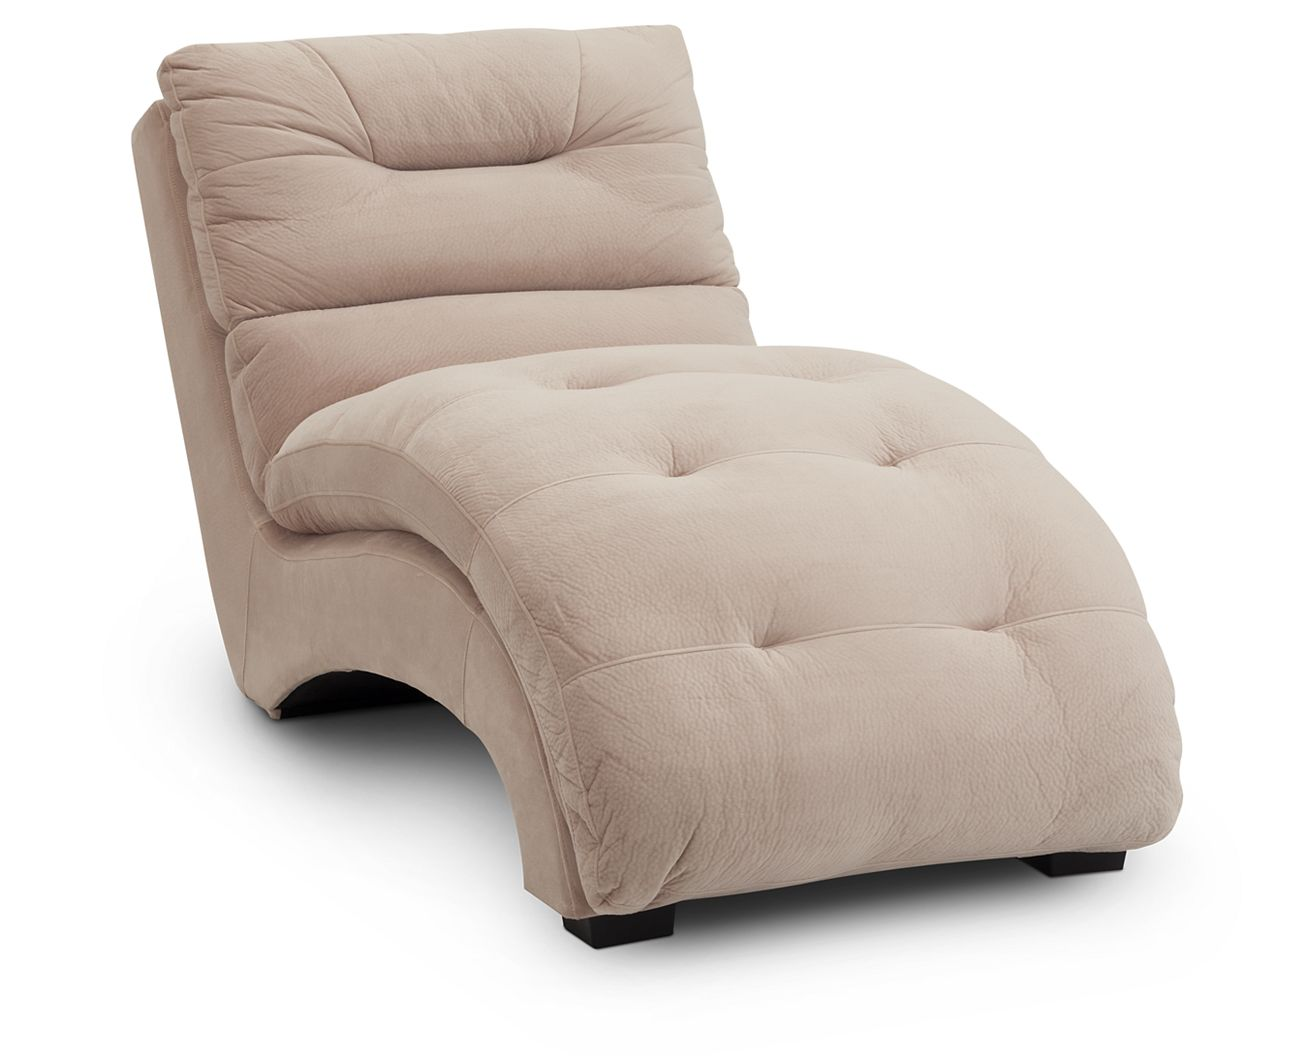 Wave chaise bed price - Full Screen Rollover To Zoom